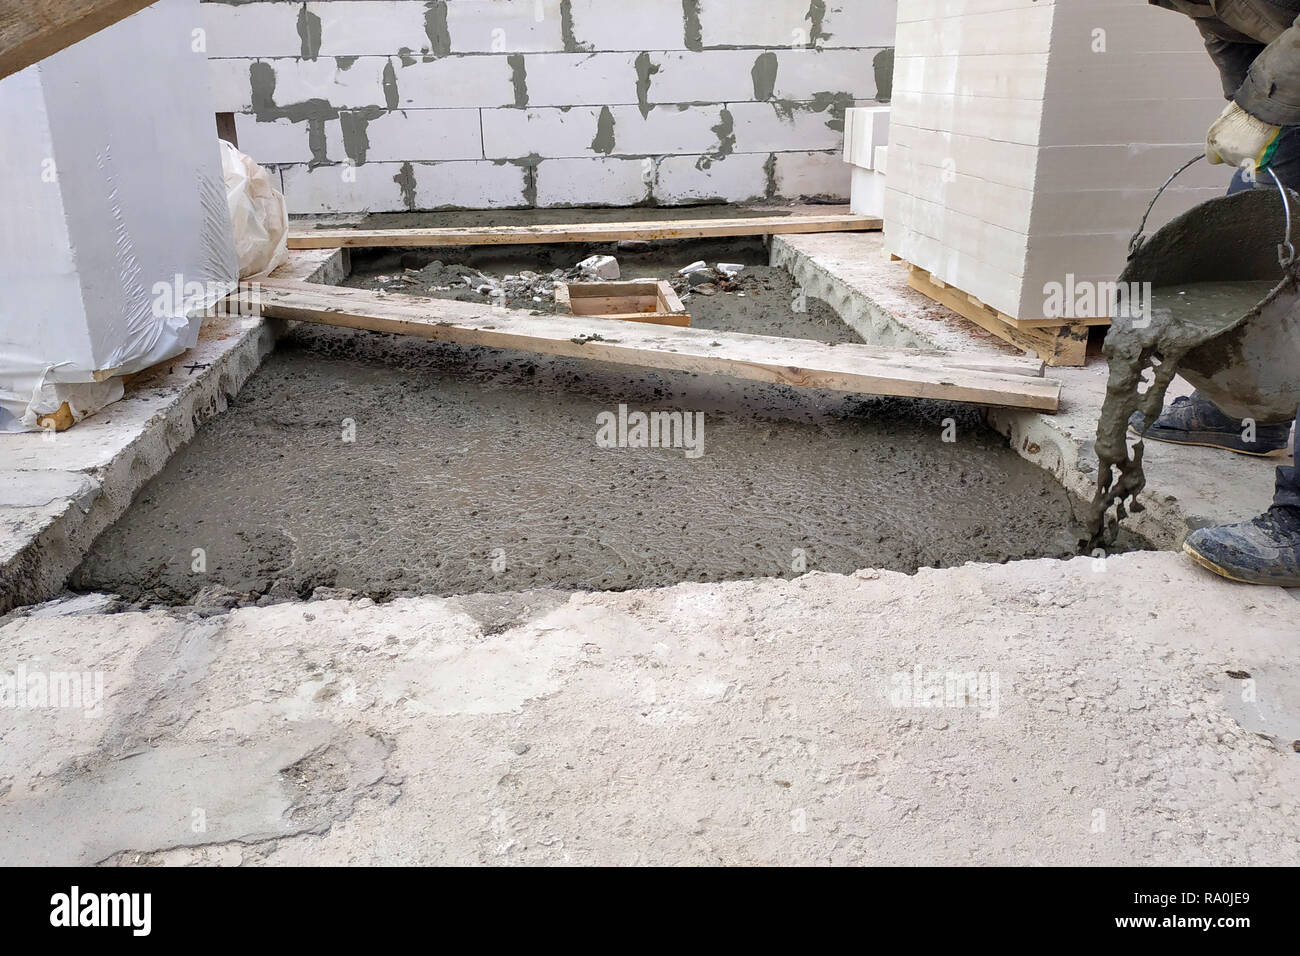 The builder pours a cement mortar slab between the floors of the house using a bucket 2018 - Stock Image